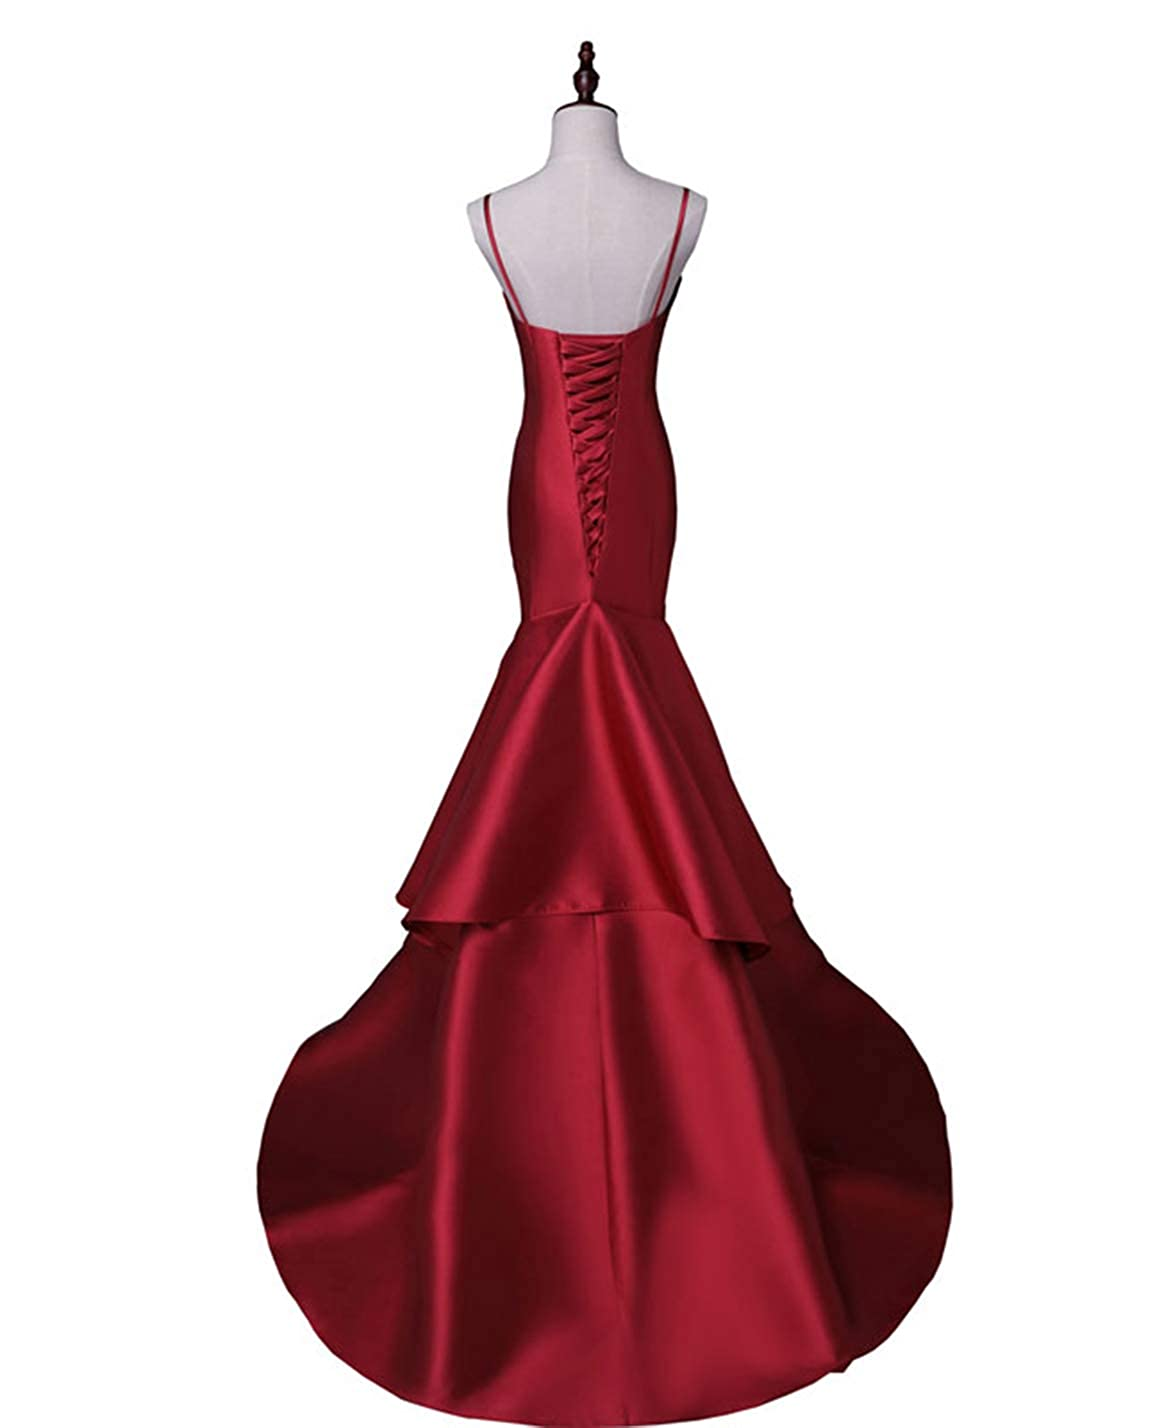 Scarisee Womens Sweetheart Mermaid Prom Evening Party Dresses Tiered FormalSA51 SA051